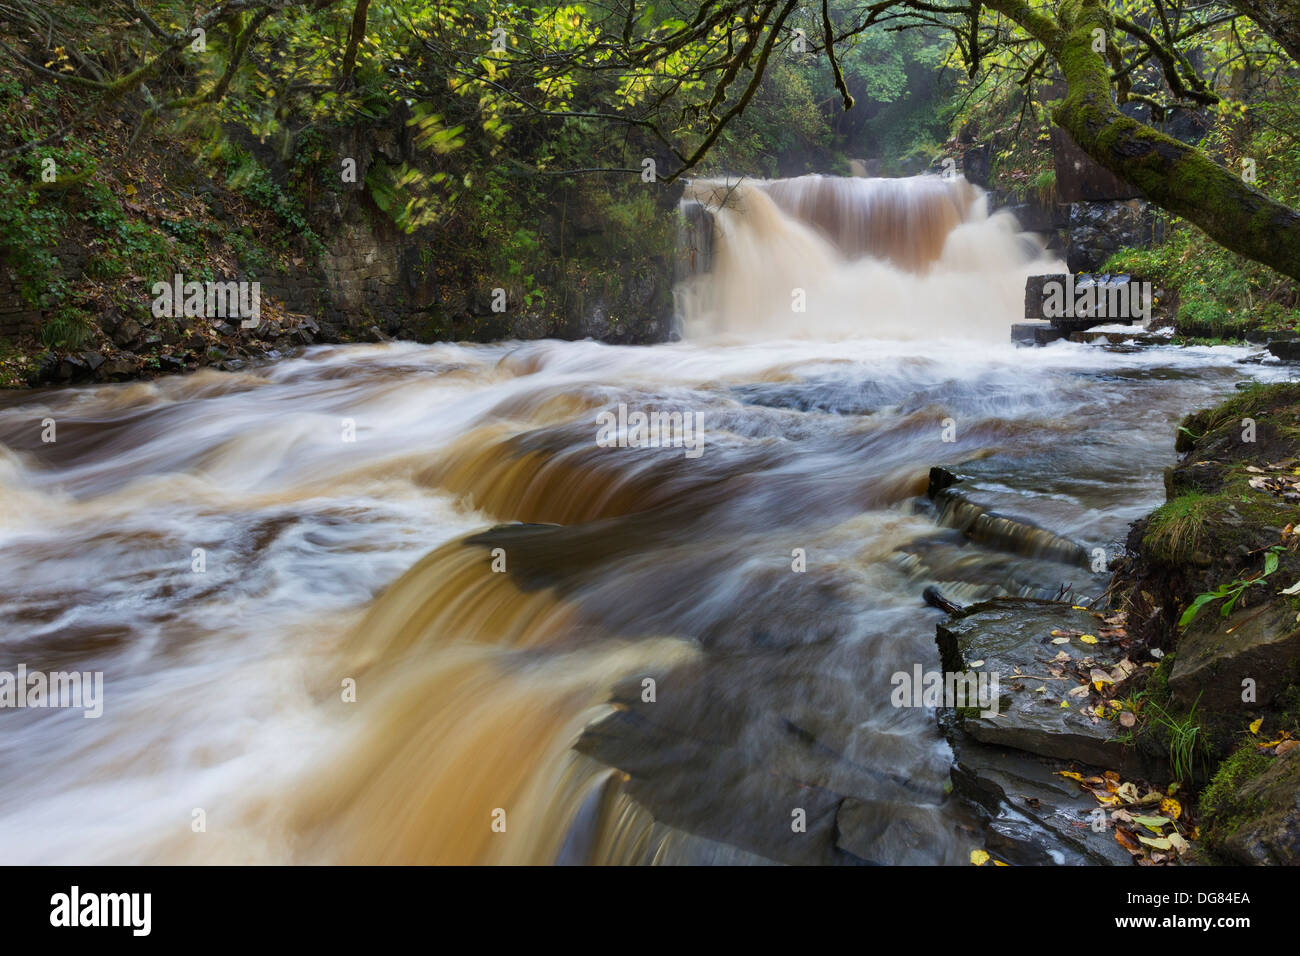 Waterfall on Bowlees Beck (Bow Lee Beck) in Flood Conditions Bowlees Teesdale County Durham UK - Stock Image